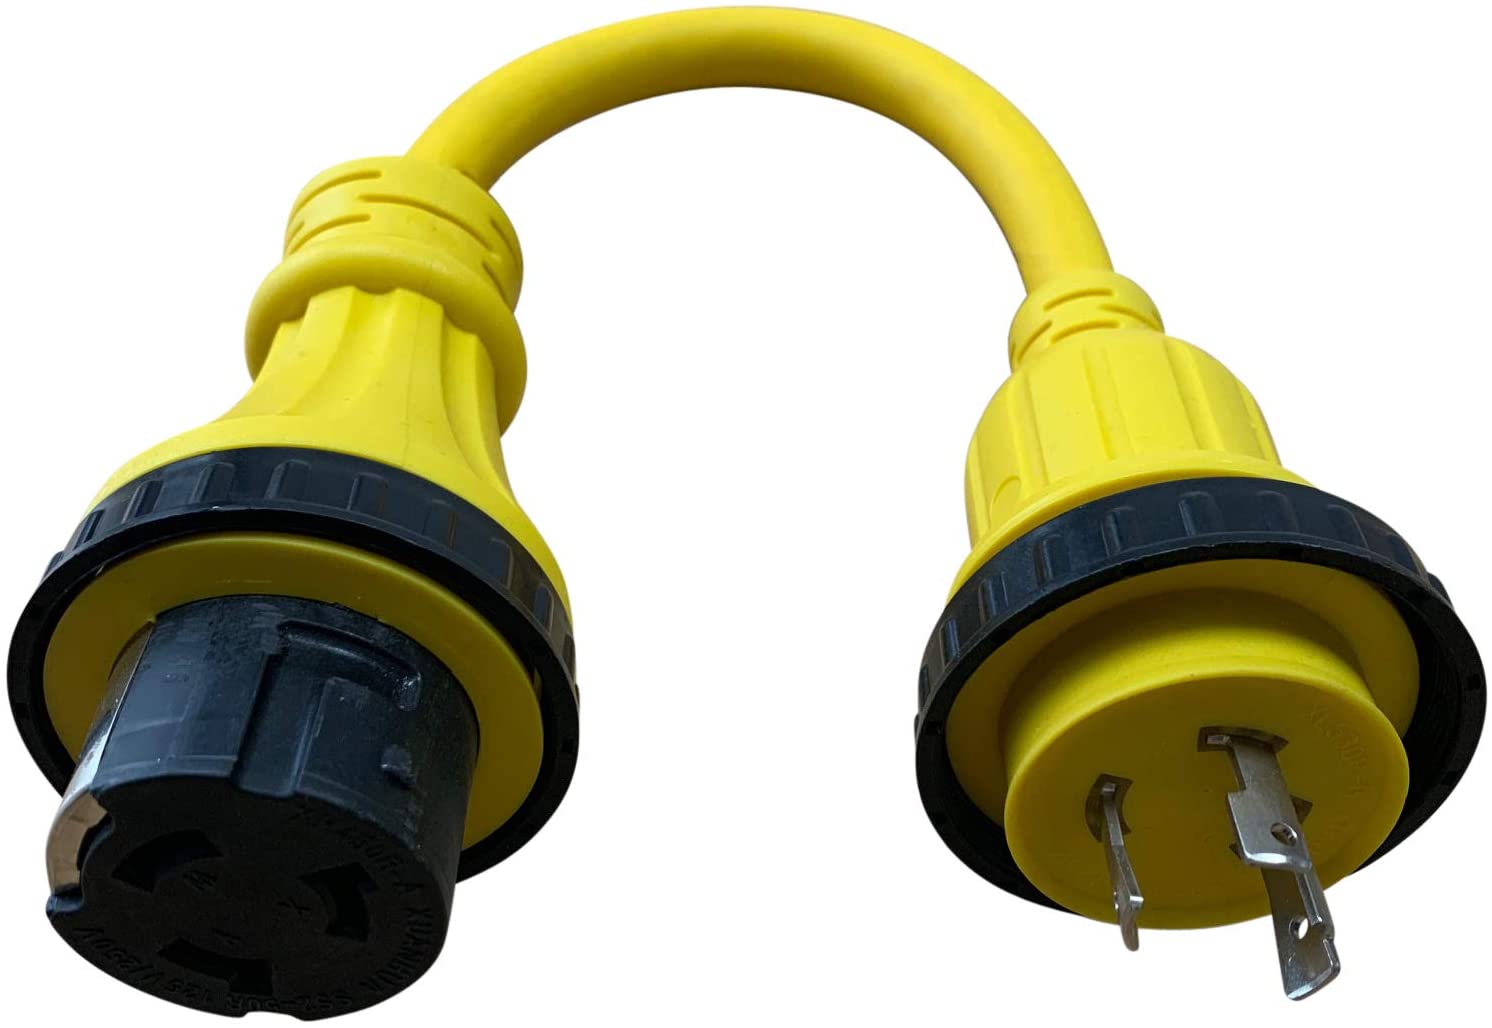 Halex, 30150, 1.5 FT. Marine Shore Power Adapter For Boats, Campers, or RVs, 30 Male to 50 Amp Female, Amp Amp, Yellow